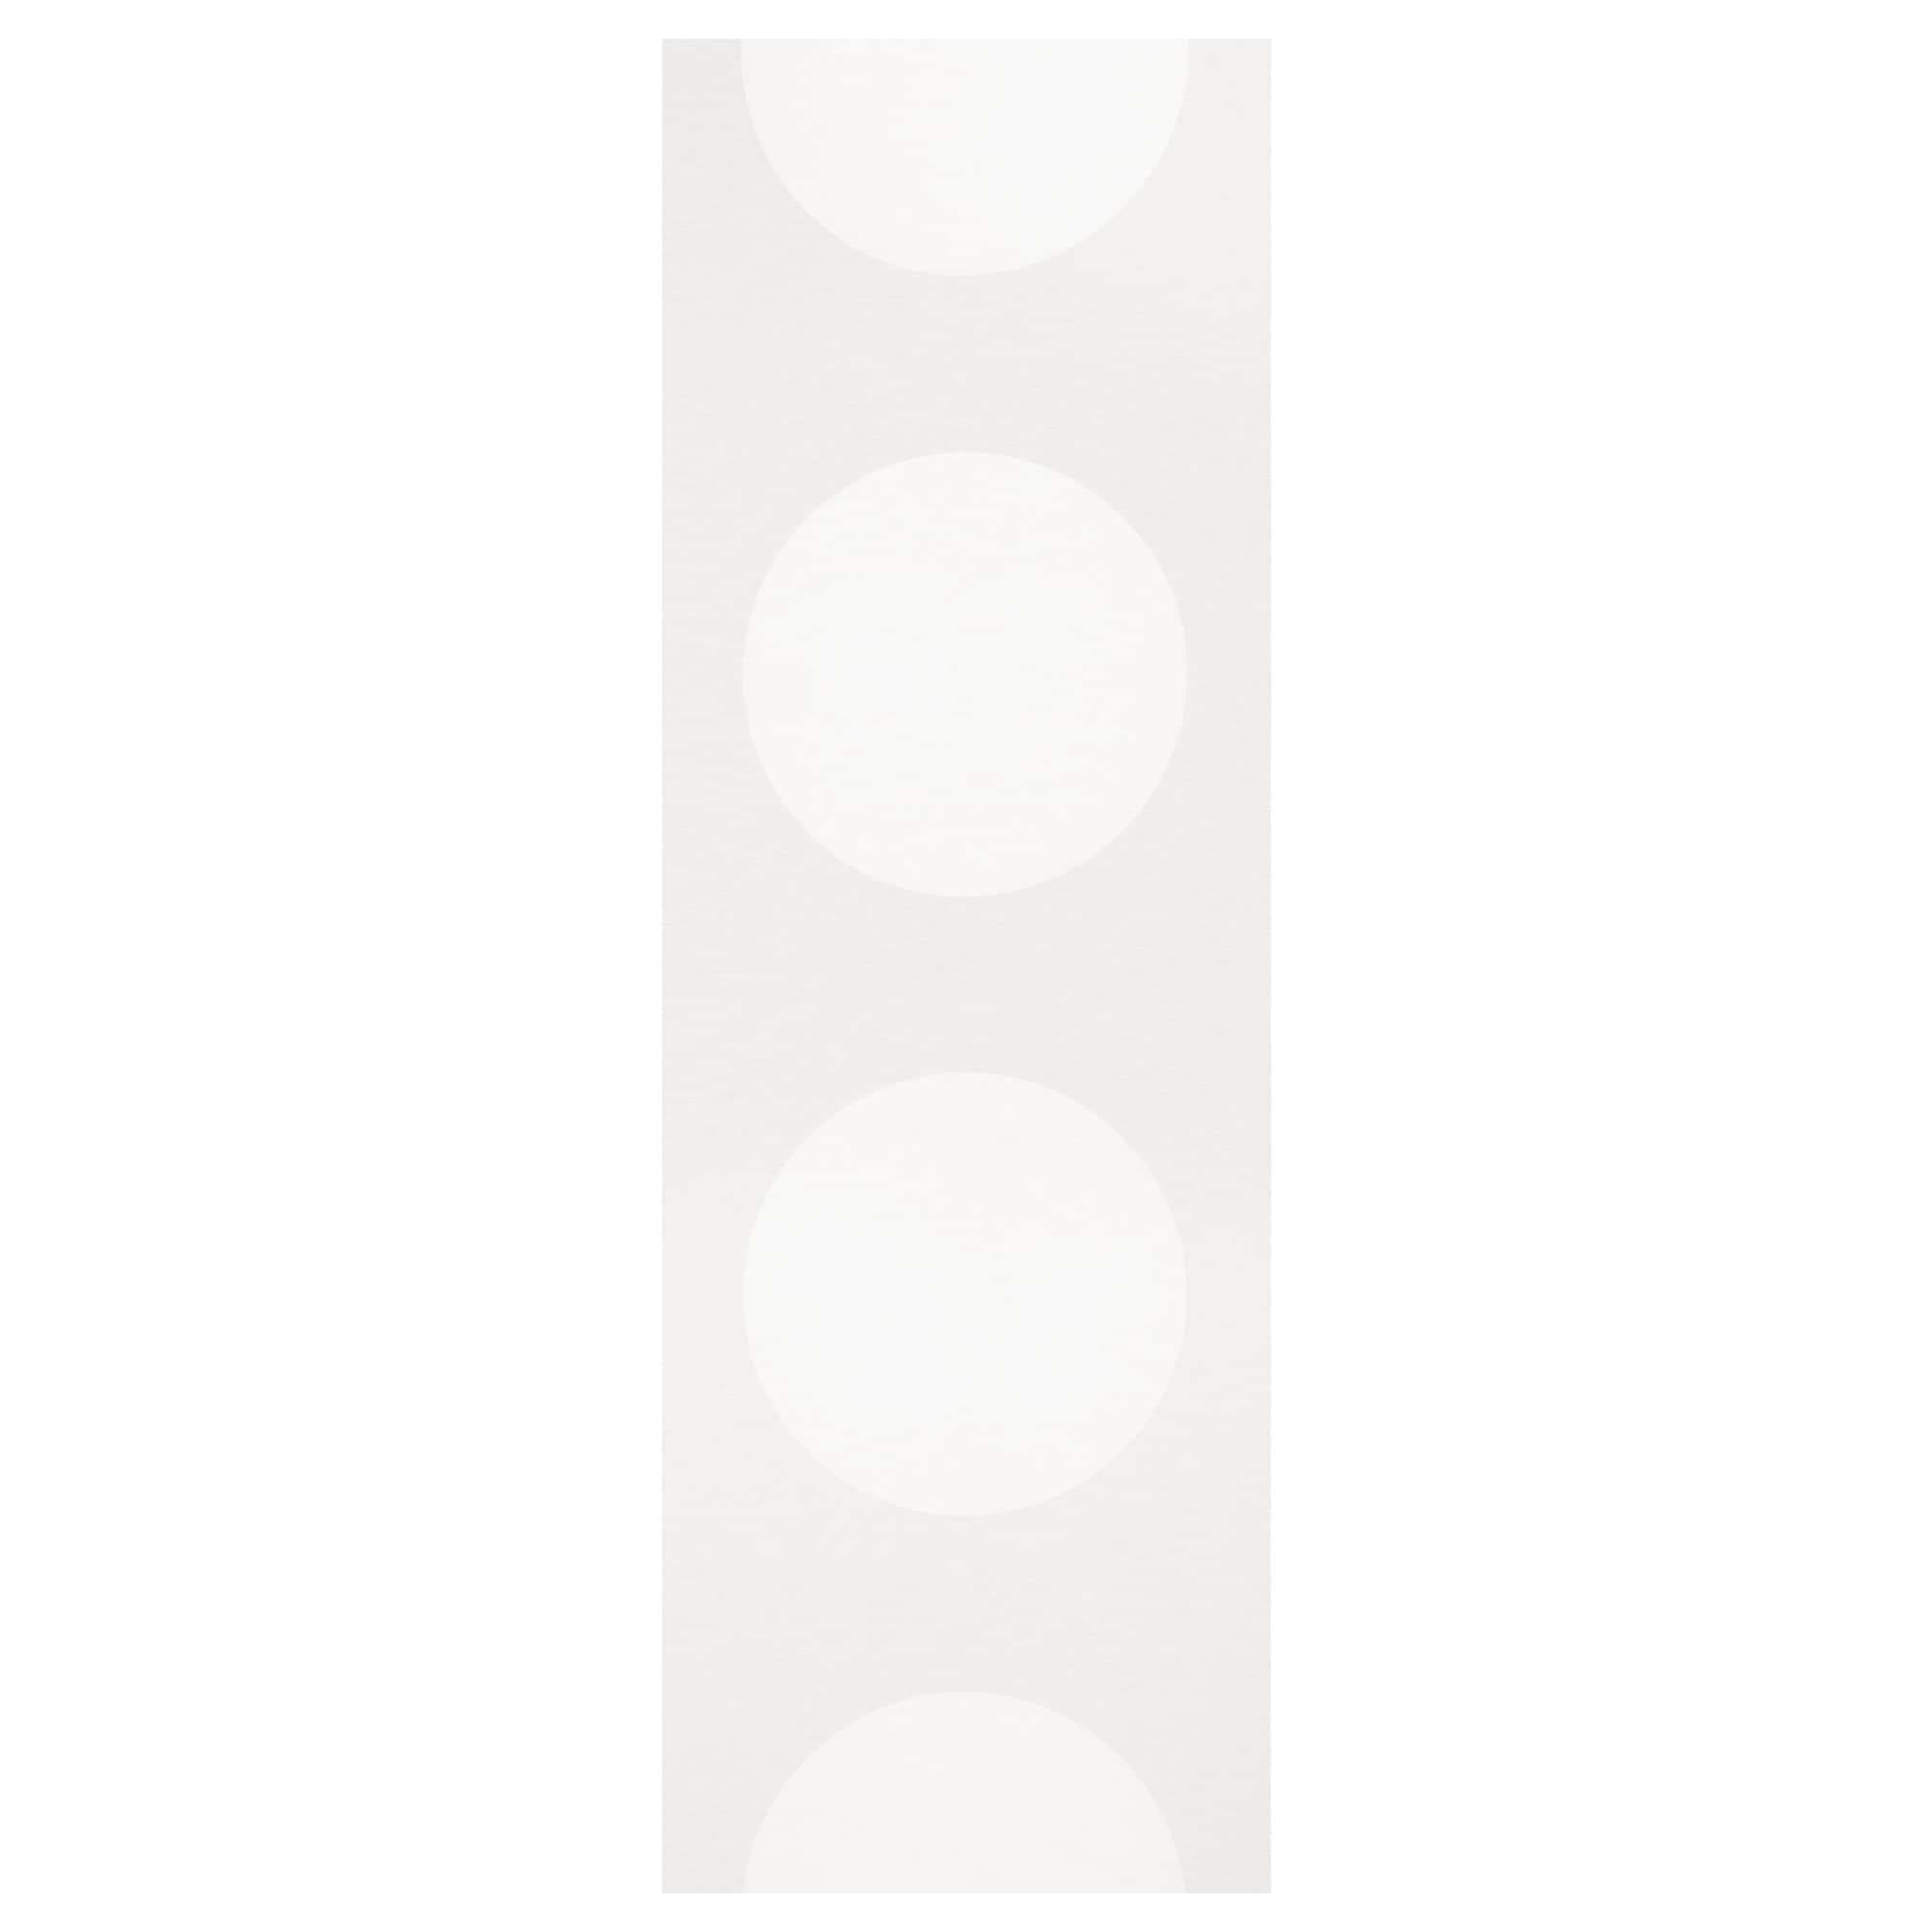 Ikea white curtains with red pattern - Semine Panel Curtain White Length 118 Width 24 Weight 4